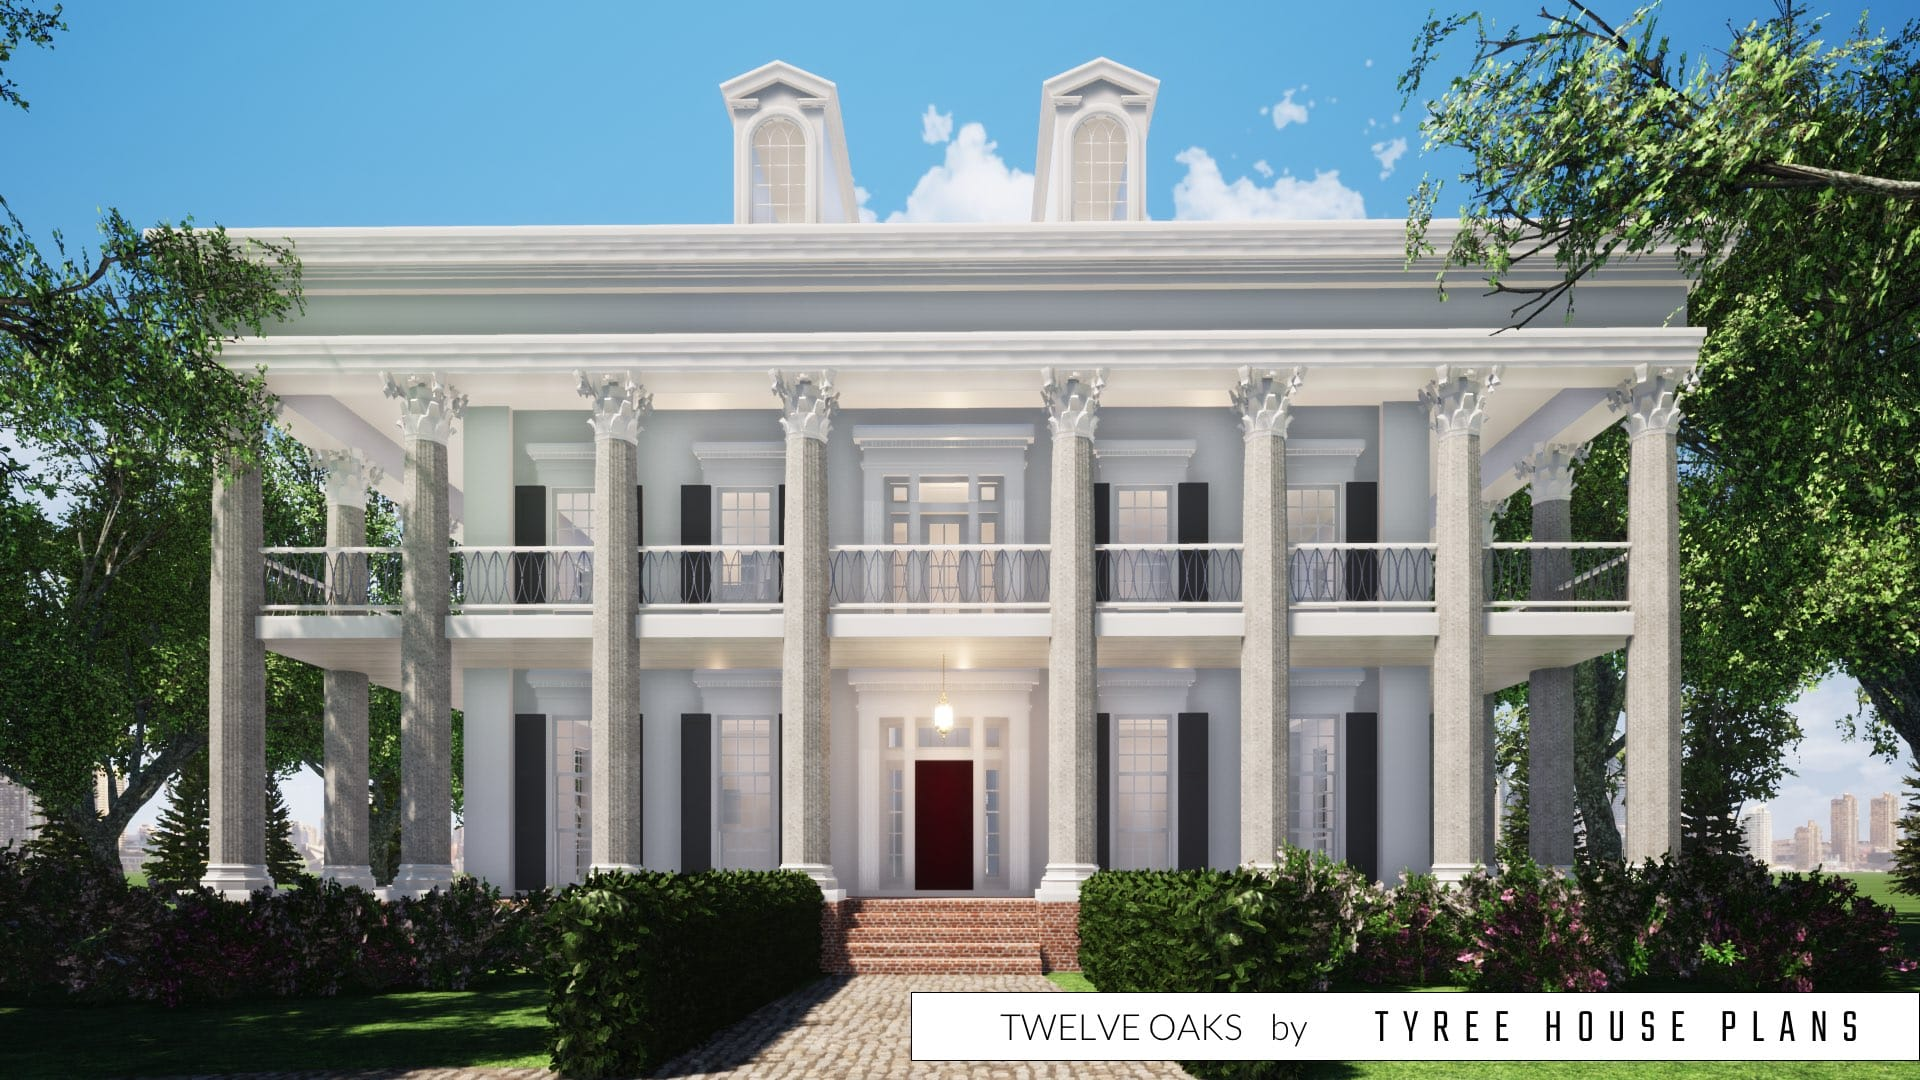 Twelve Oaks by Tyree House Plans